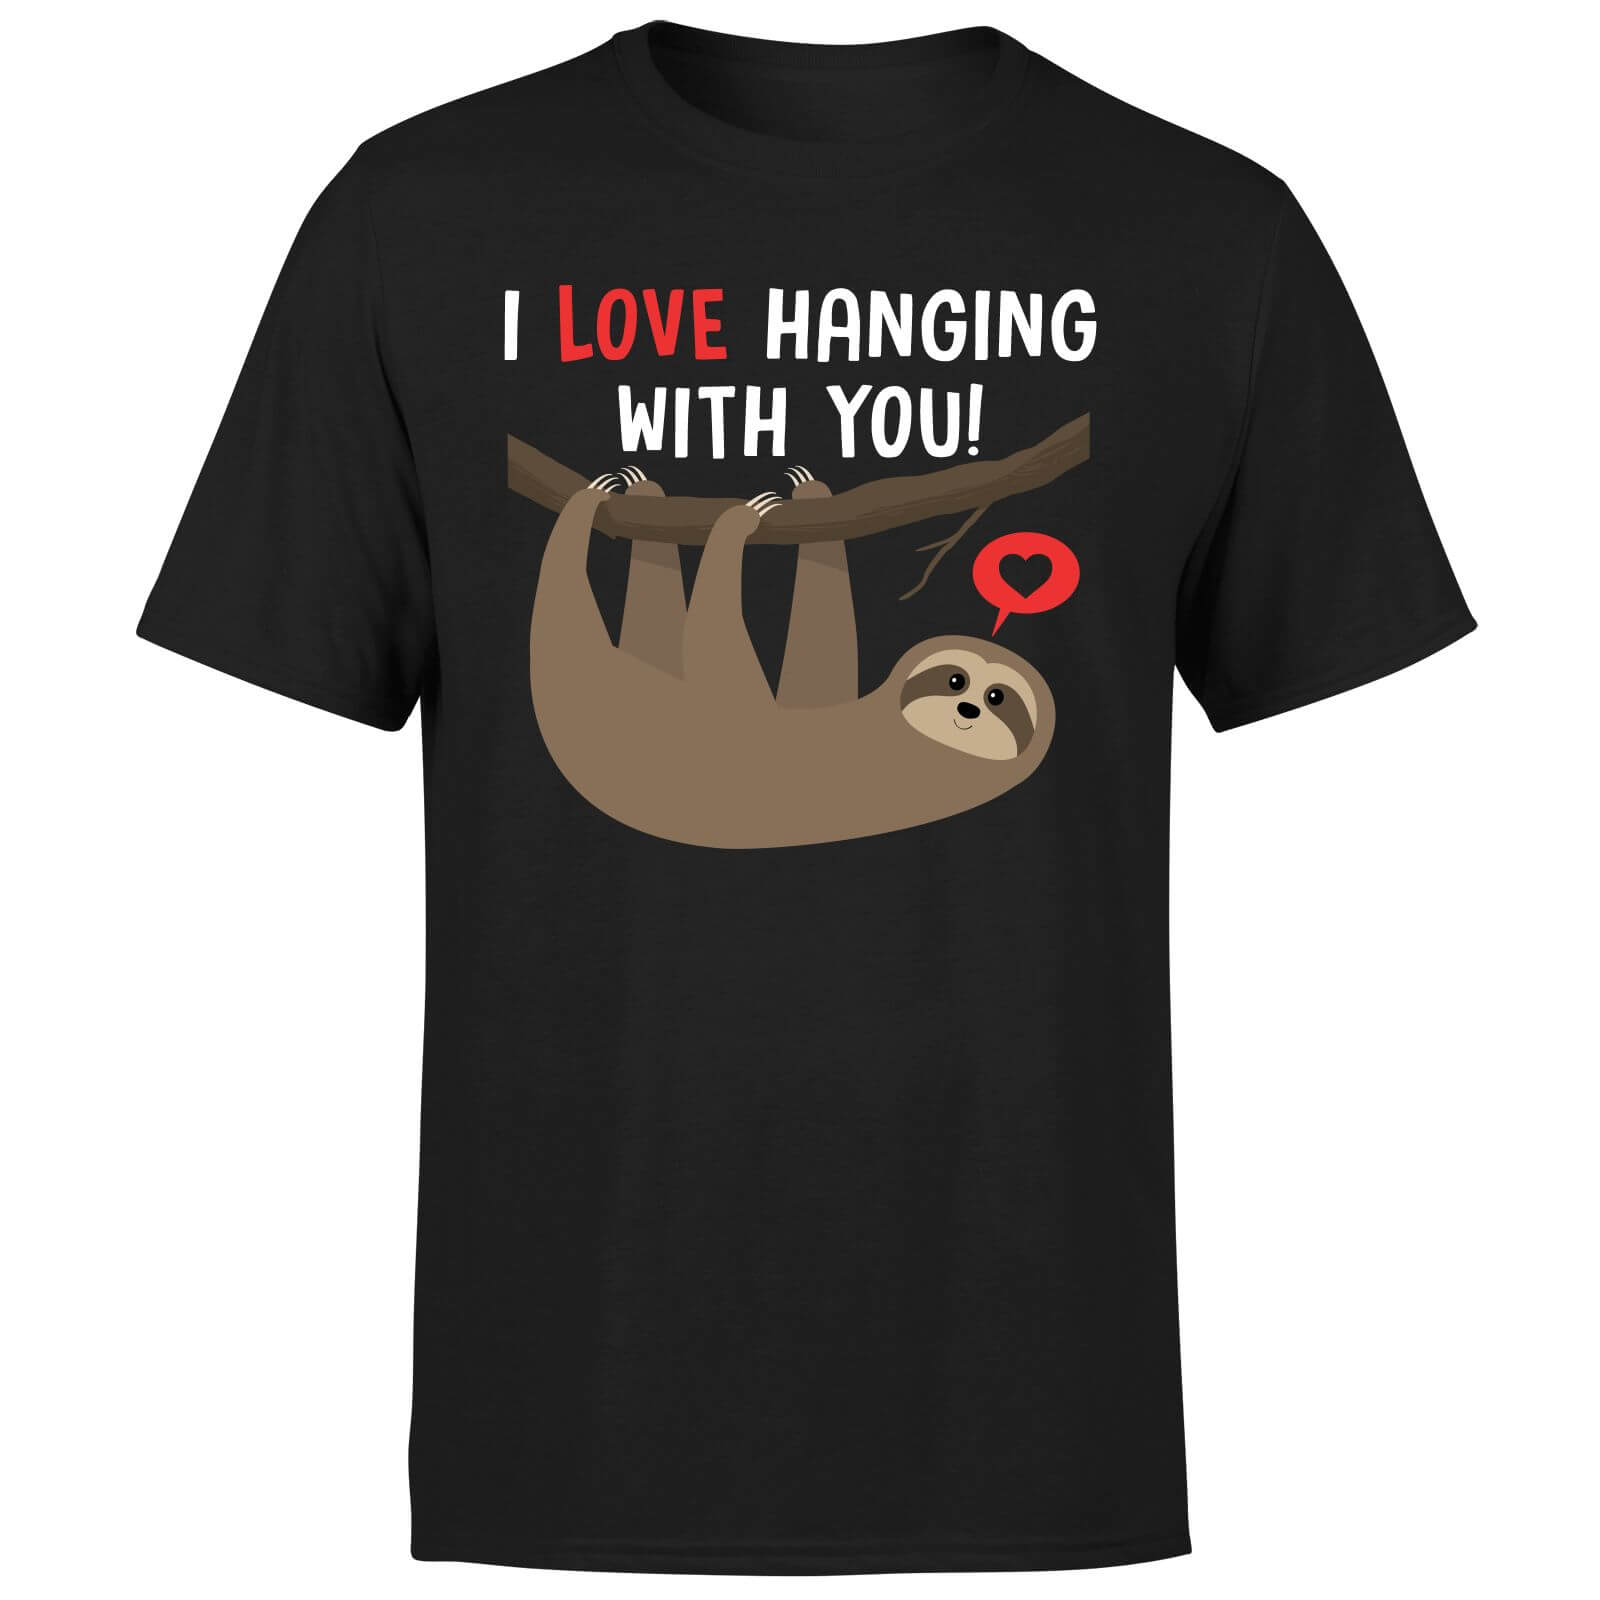 I Love Hanging With You T-Shirt - Black